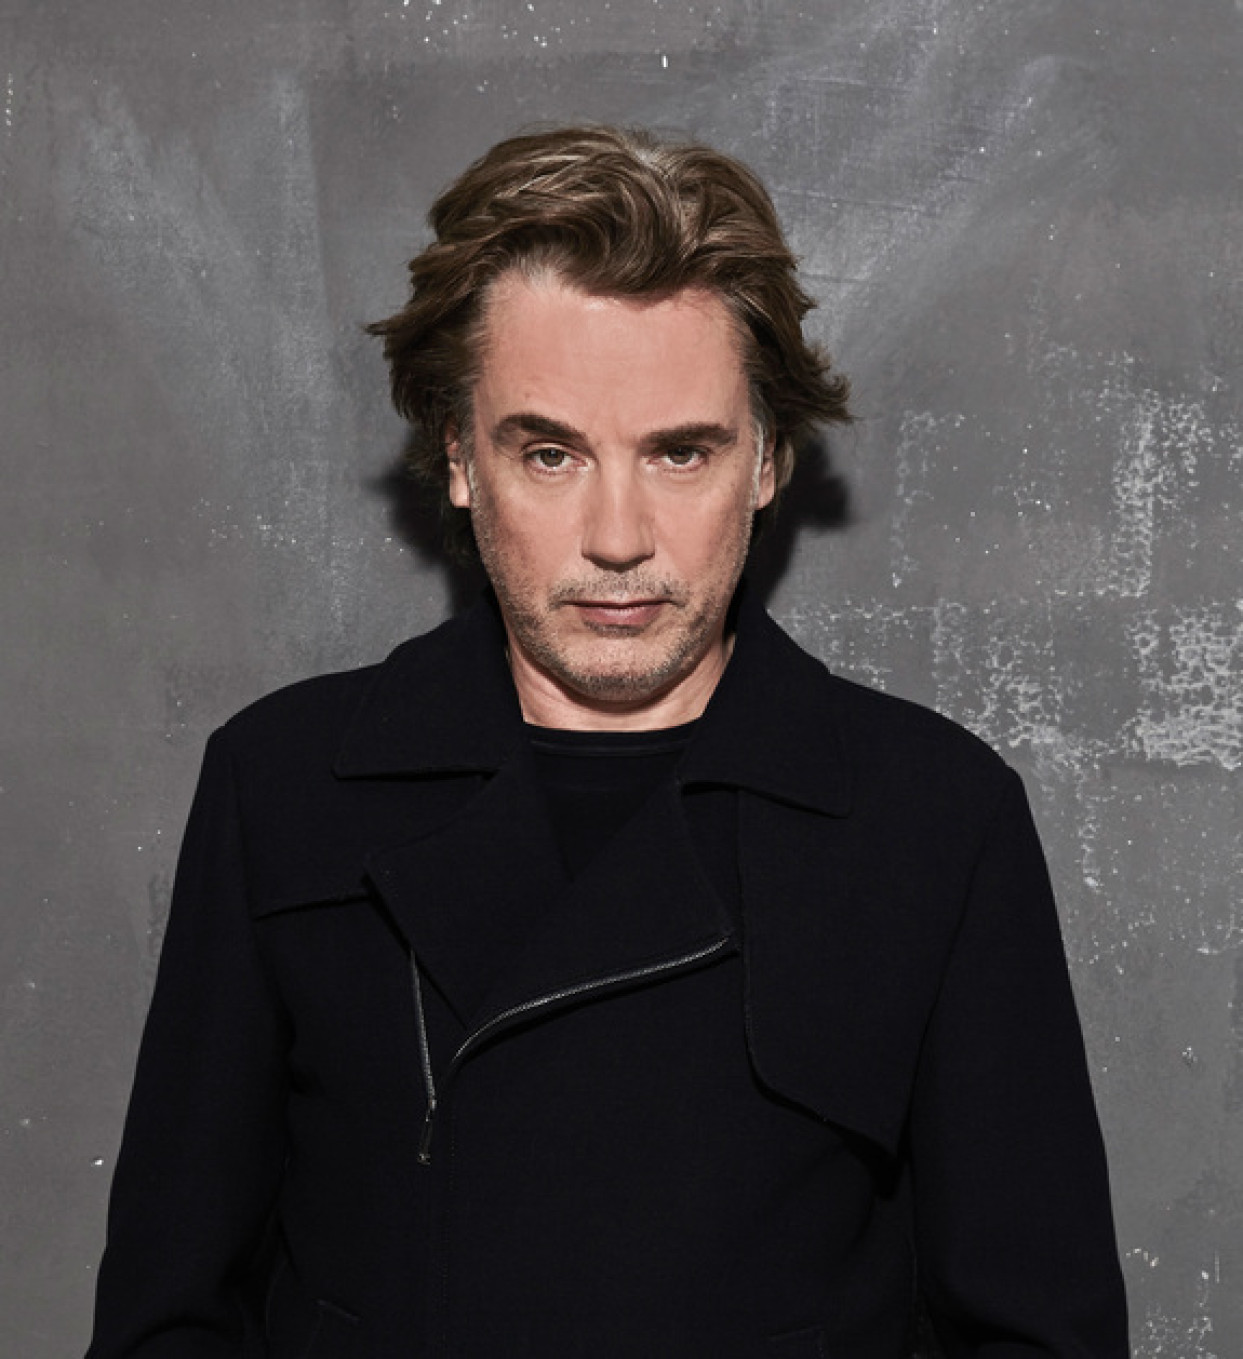 JEAN-MICHEL JARRE ANNOUNCES SPECIAL EDITION VINYL EPs